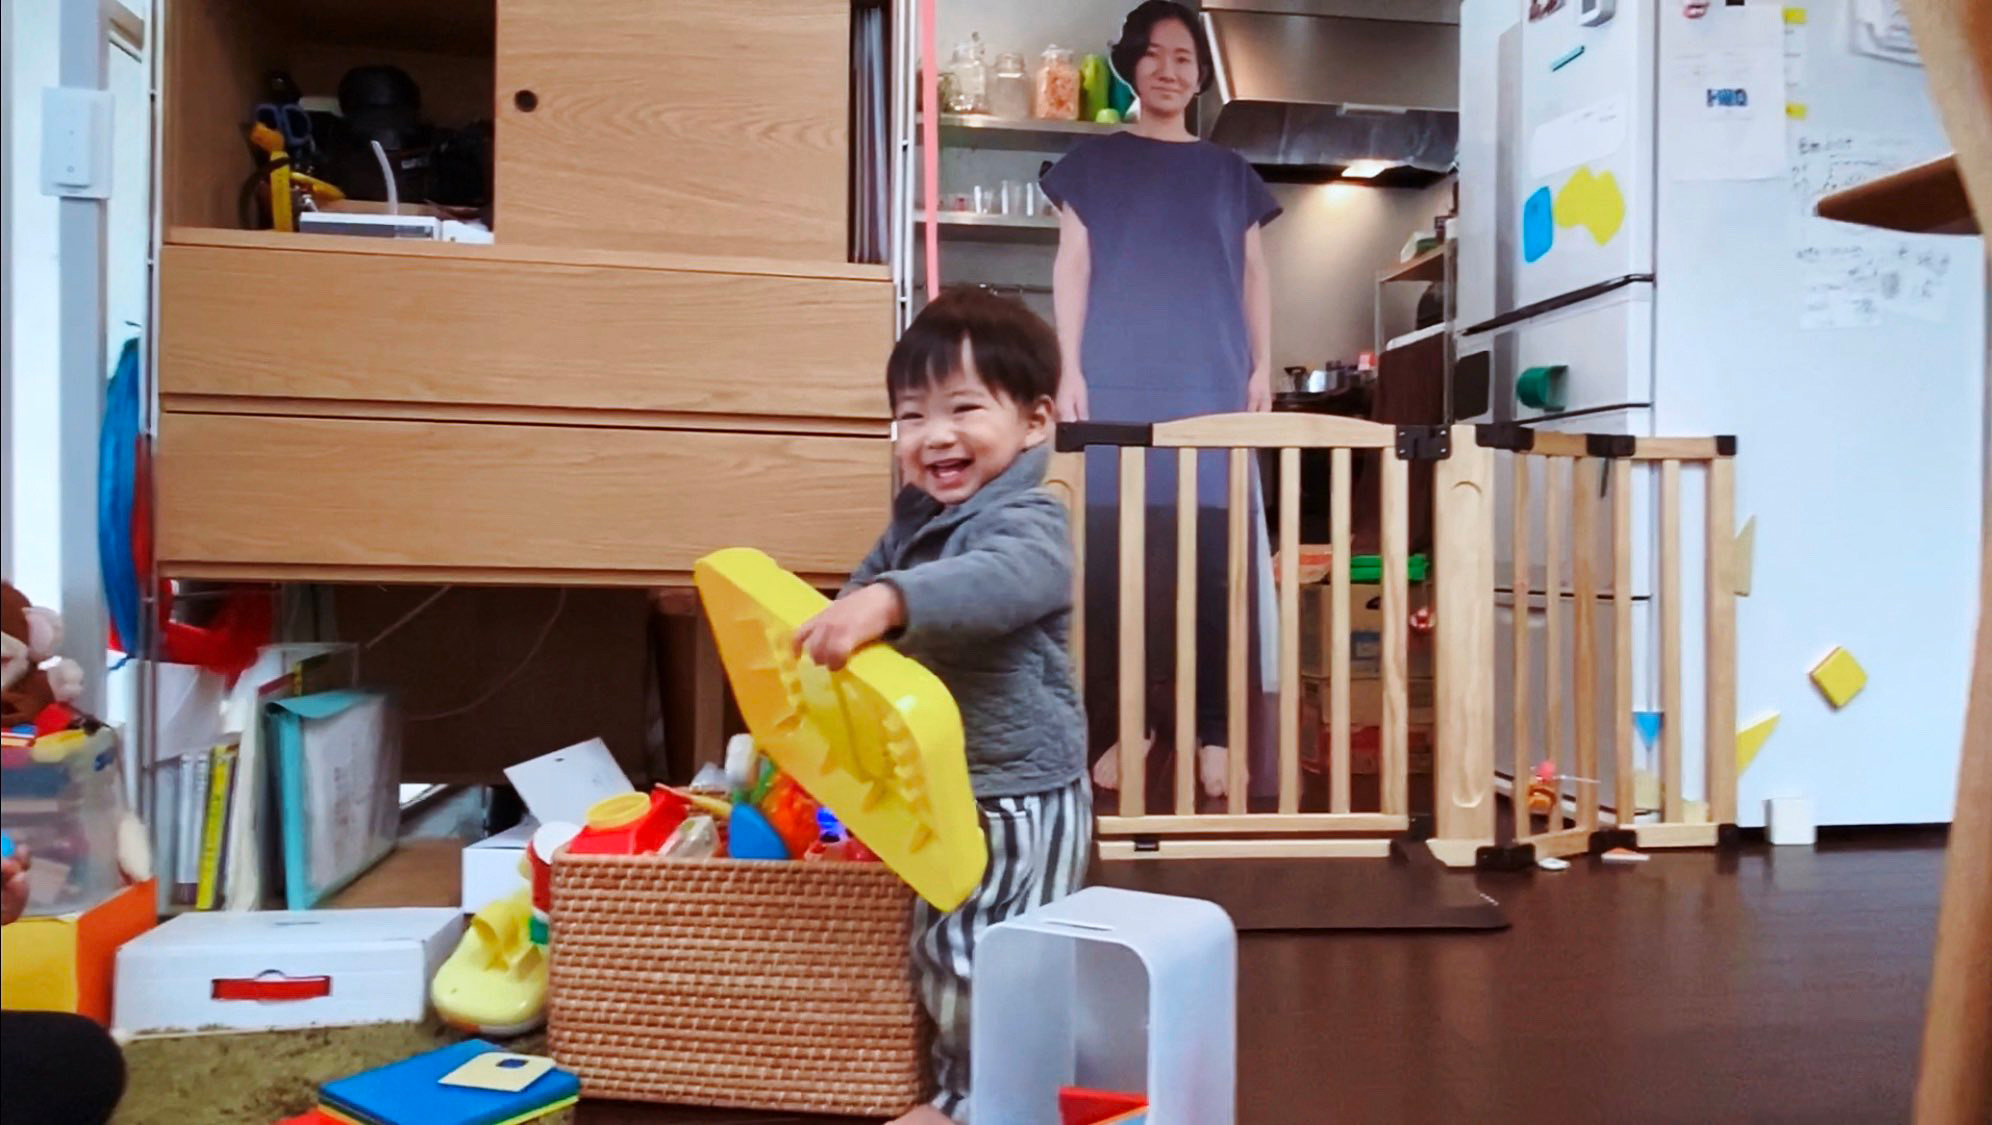 Mom's Massive Cutout of Herself Stops Toddler from Crying When She Leaves the Room